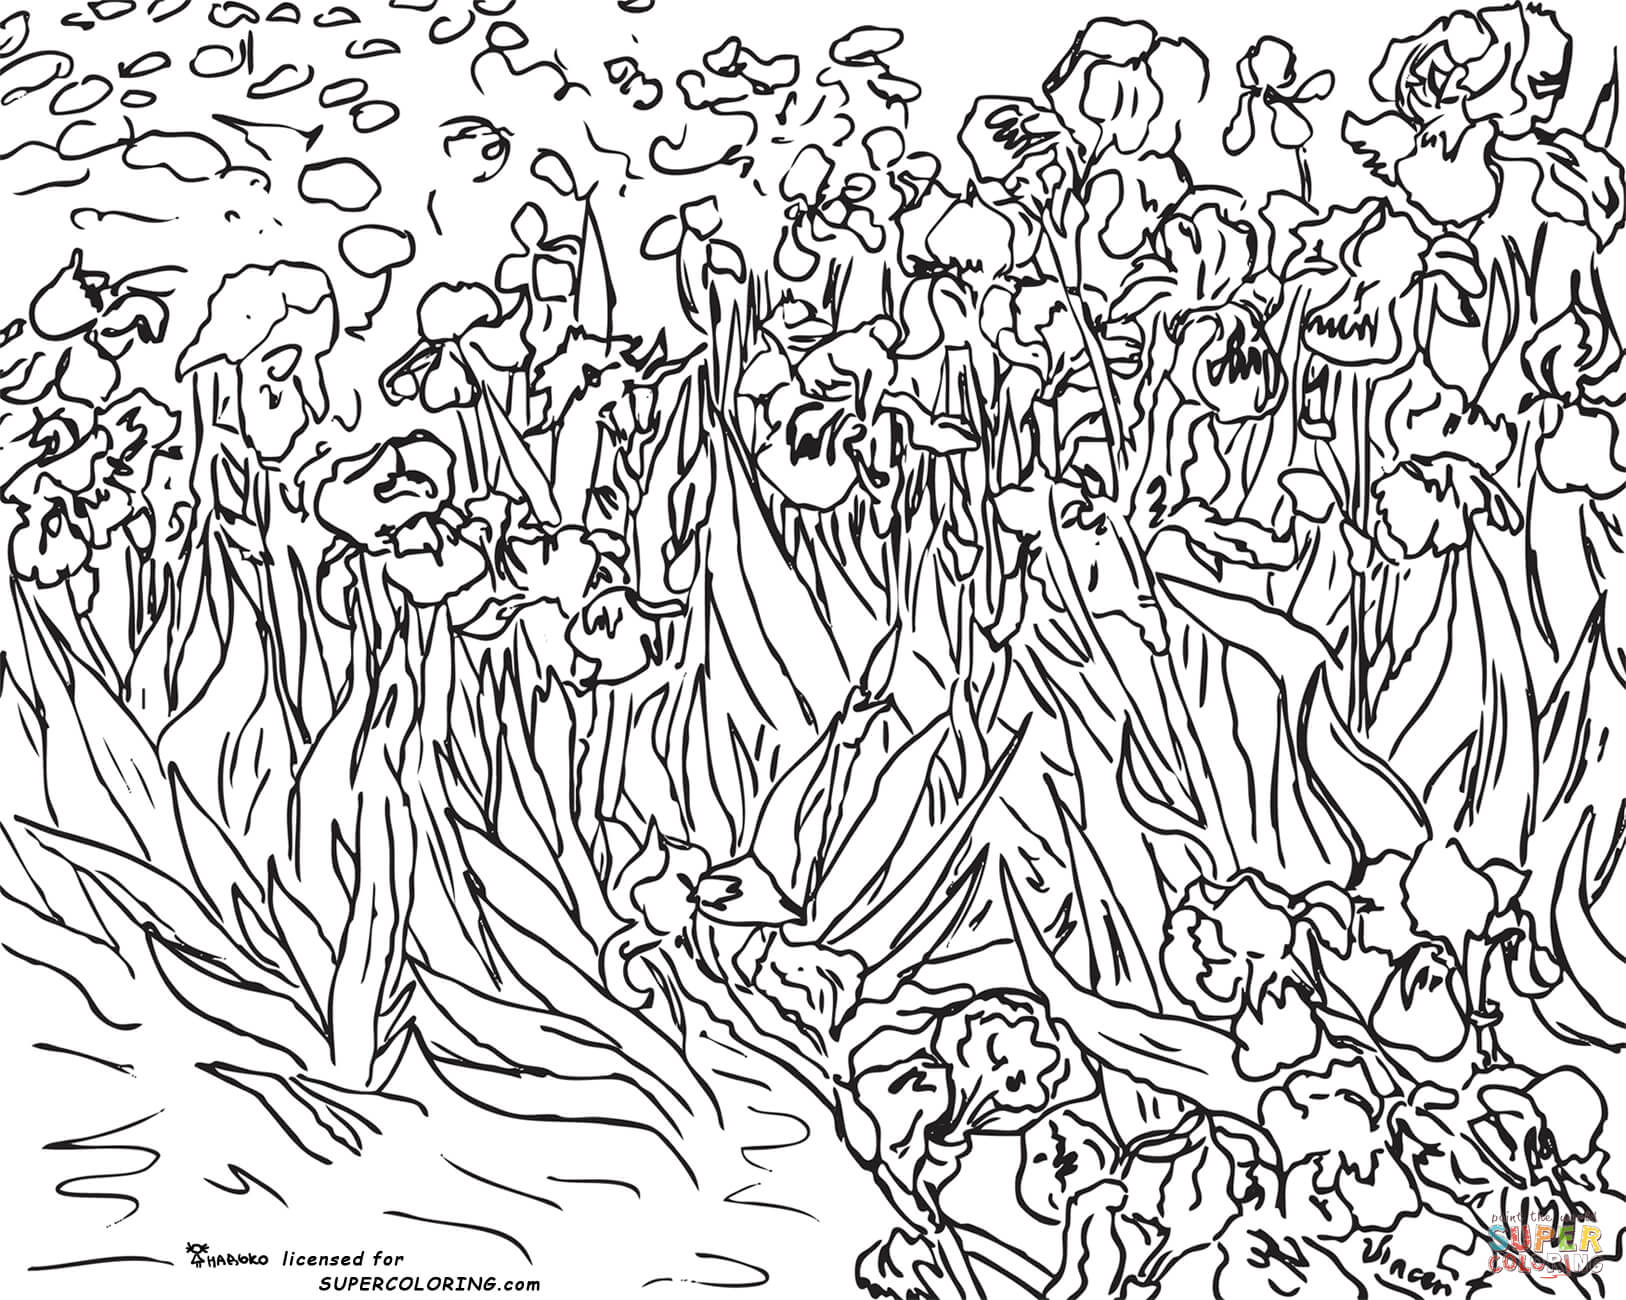 Impressionist coloring #1, Download drawings